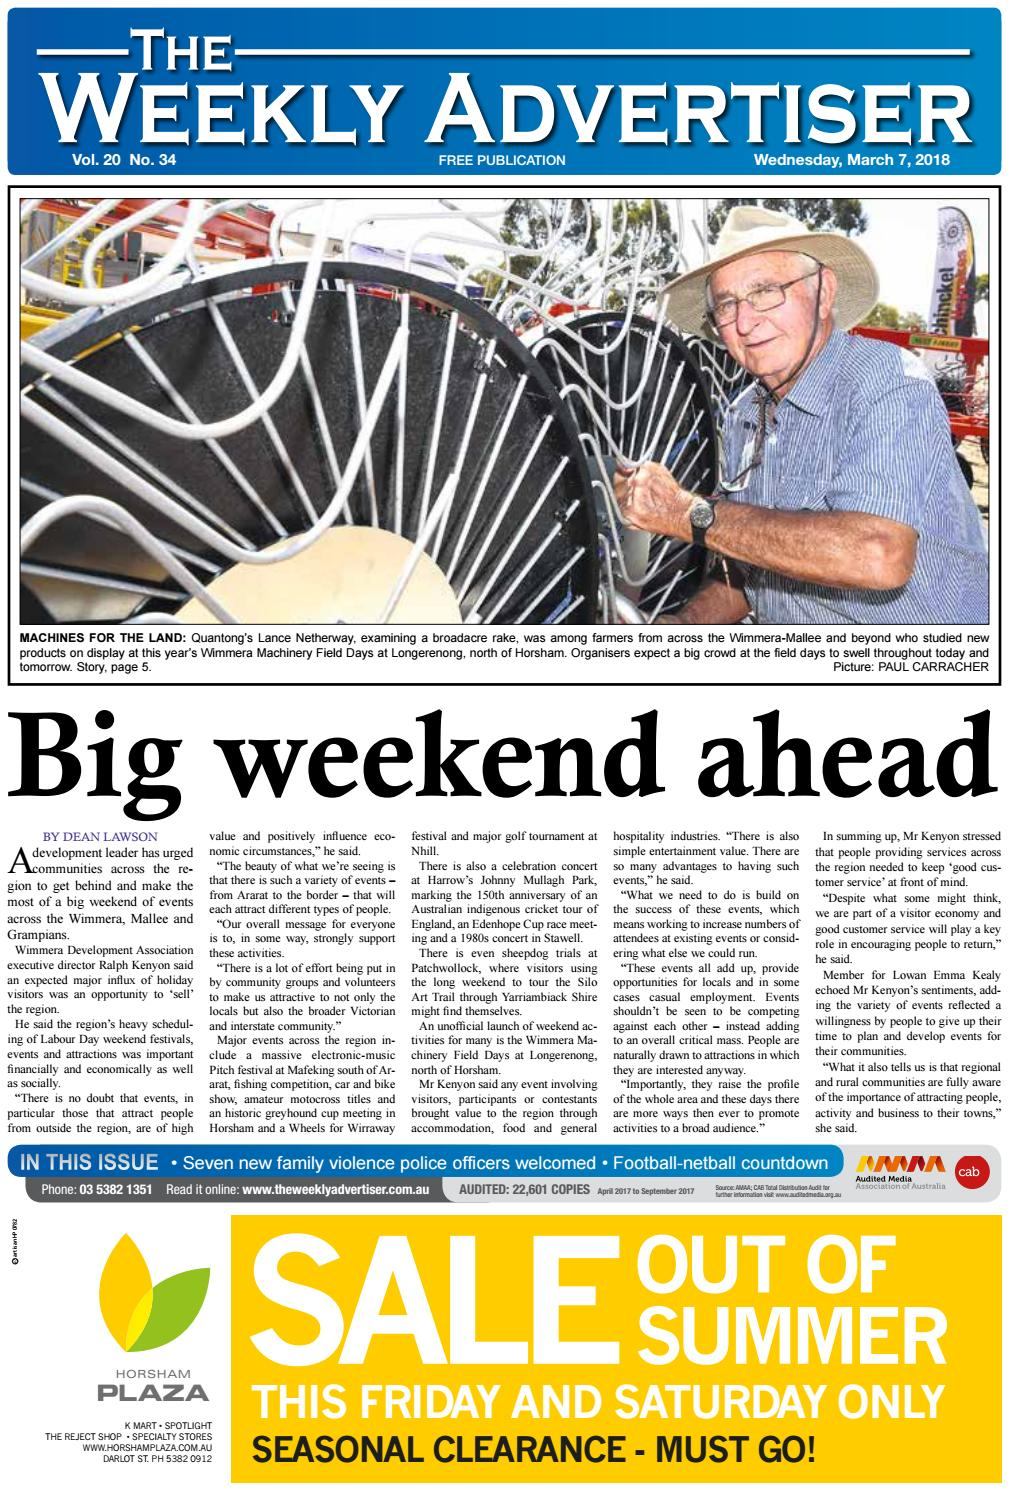 b4e2fa72cc4 The Weekly Advertiser - Wednesday